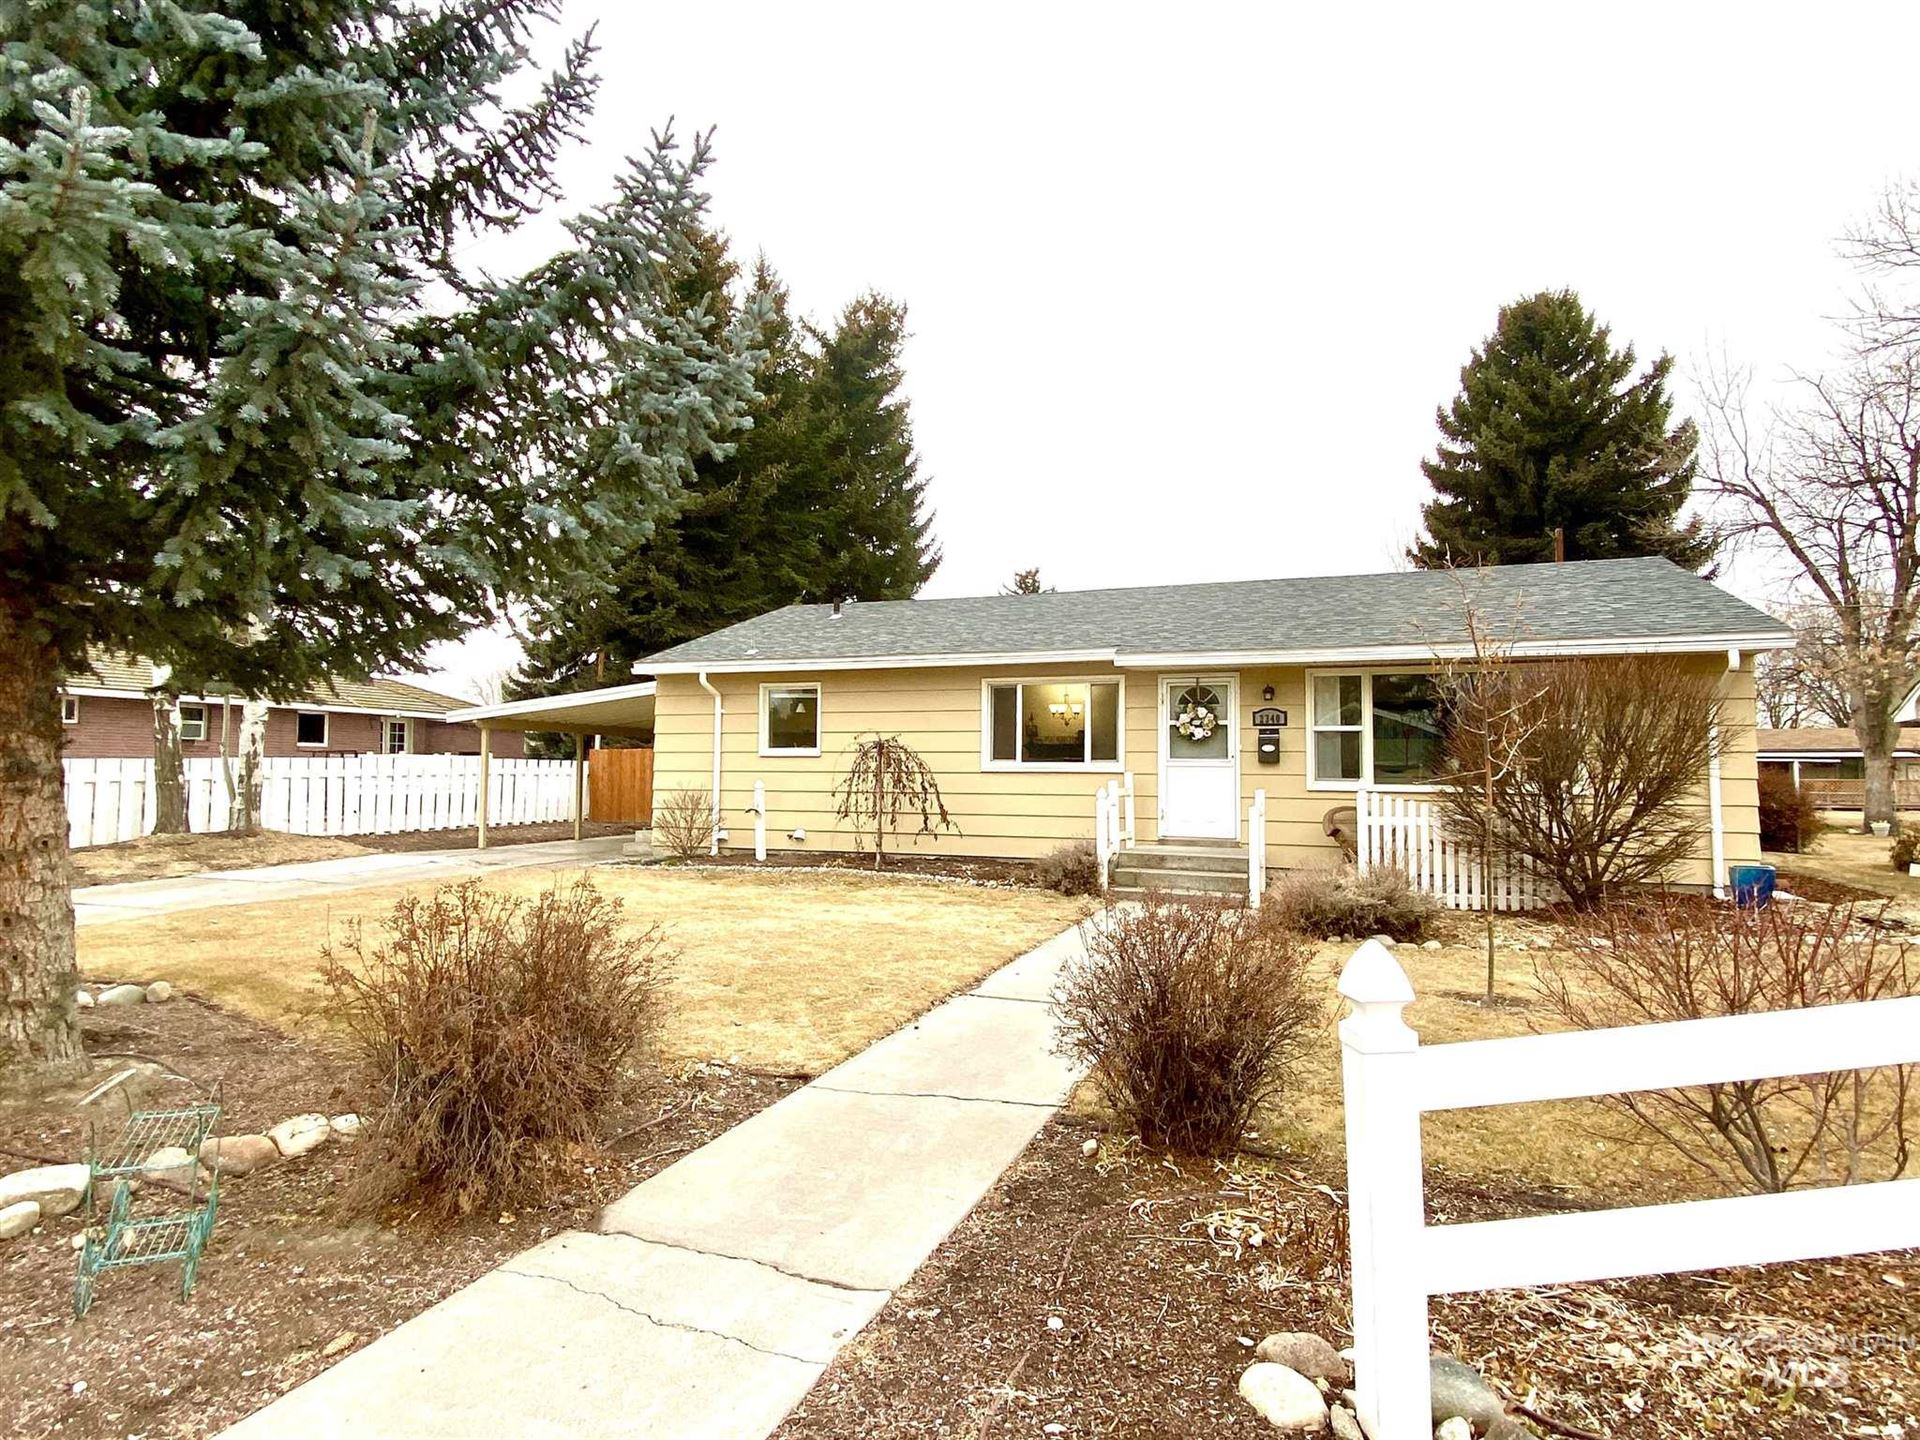 Photo of 2340 Miller Ave, Burley, ID 83318 (MLS # 98791611)